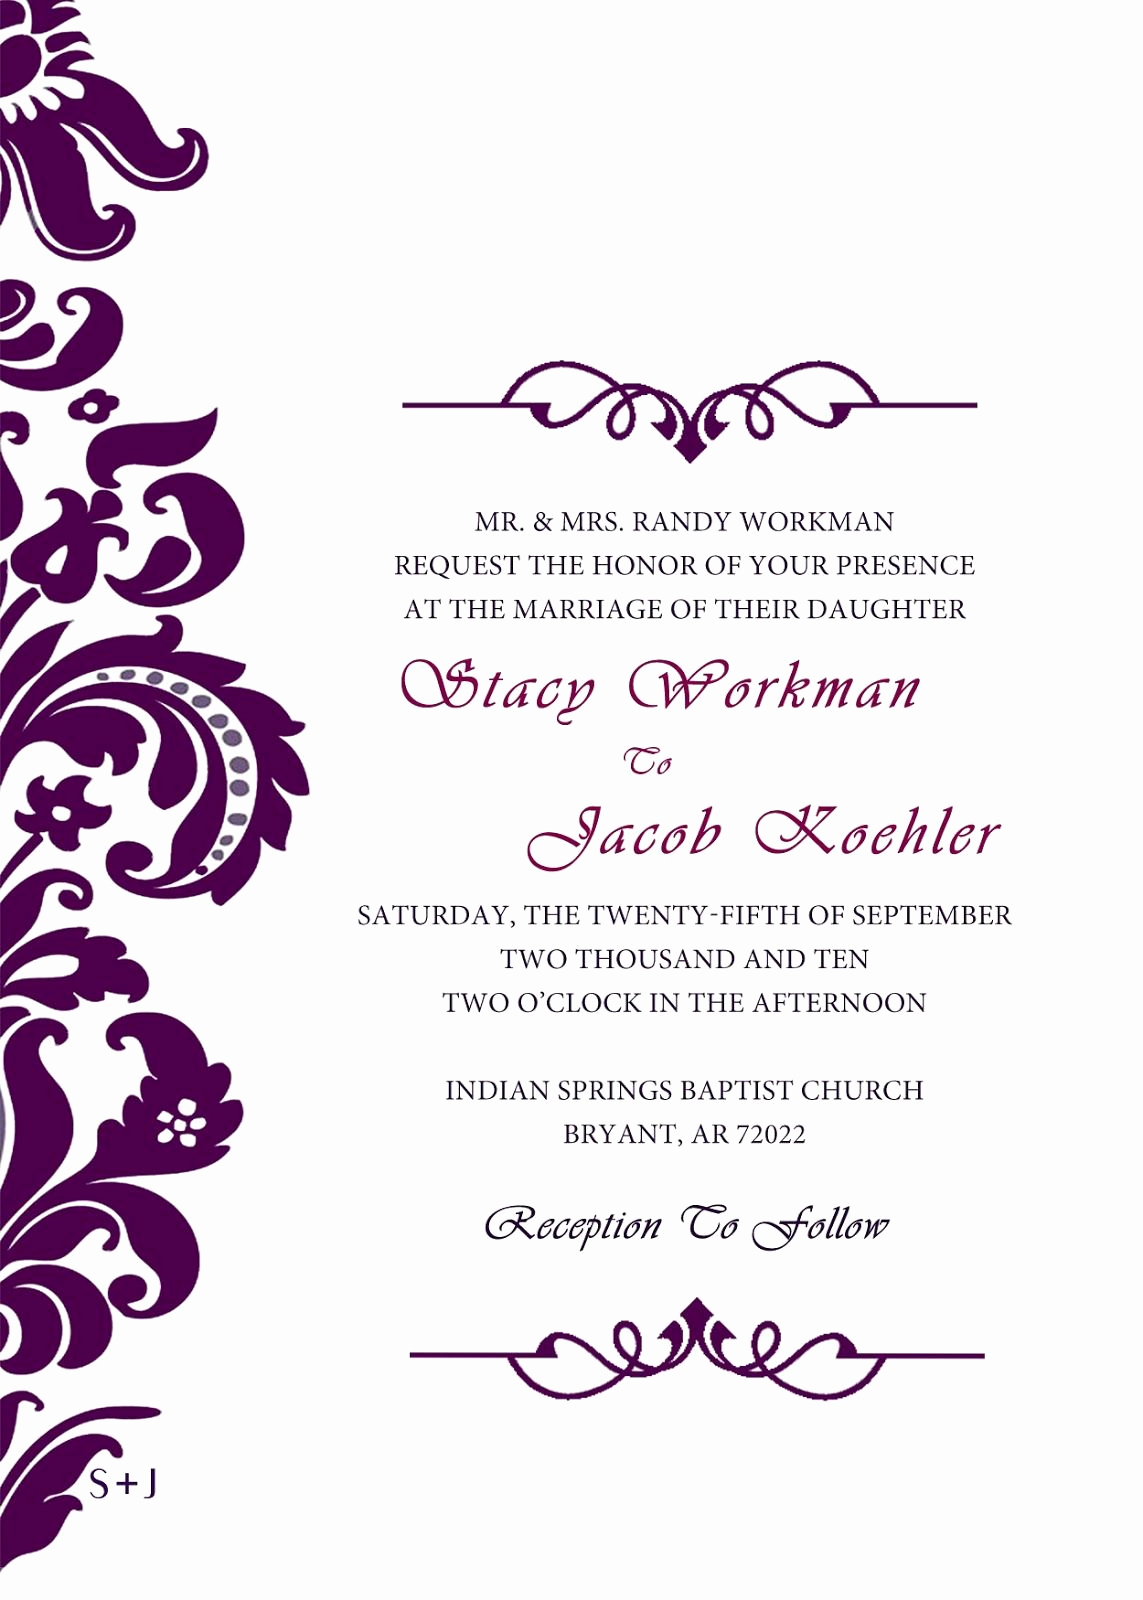 Wedding Invitation Design Templates Lovely Blank Wedding Invitations Templates Purple